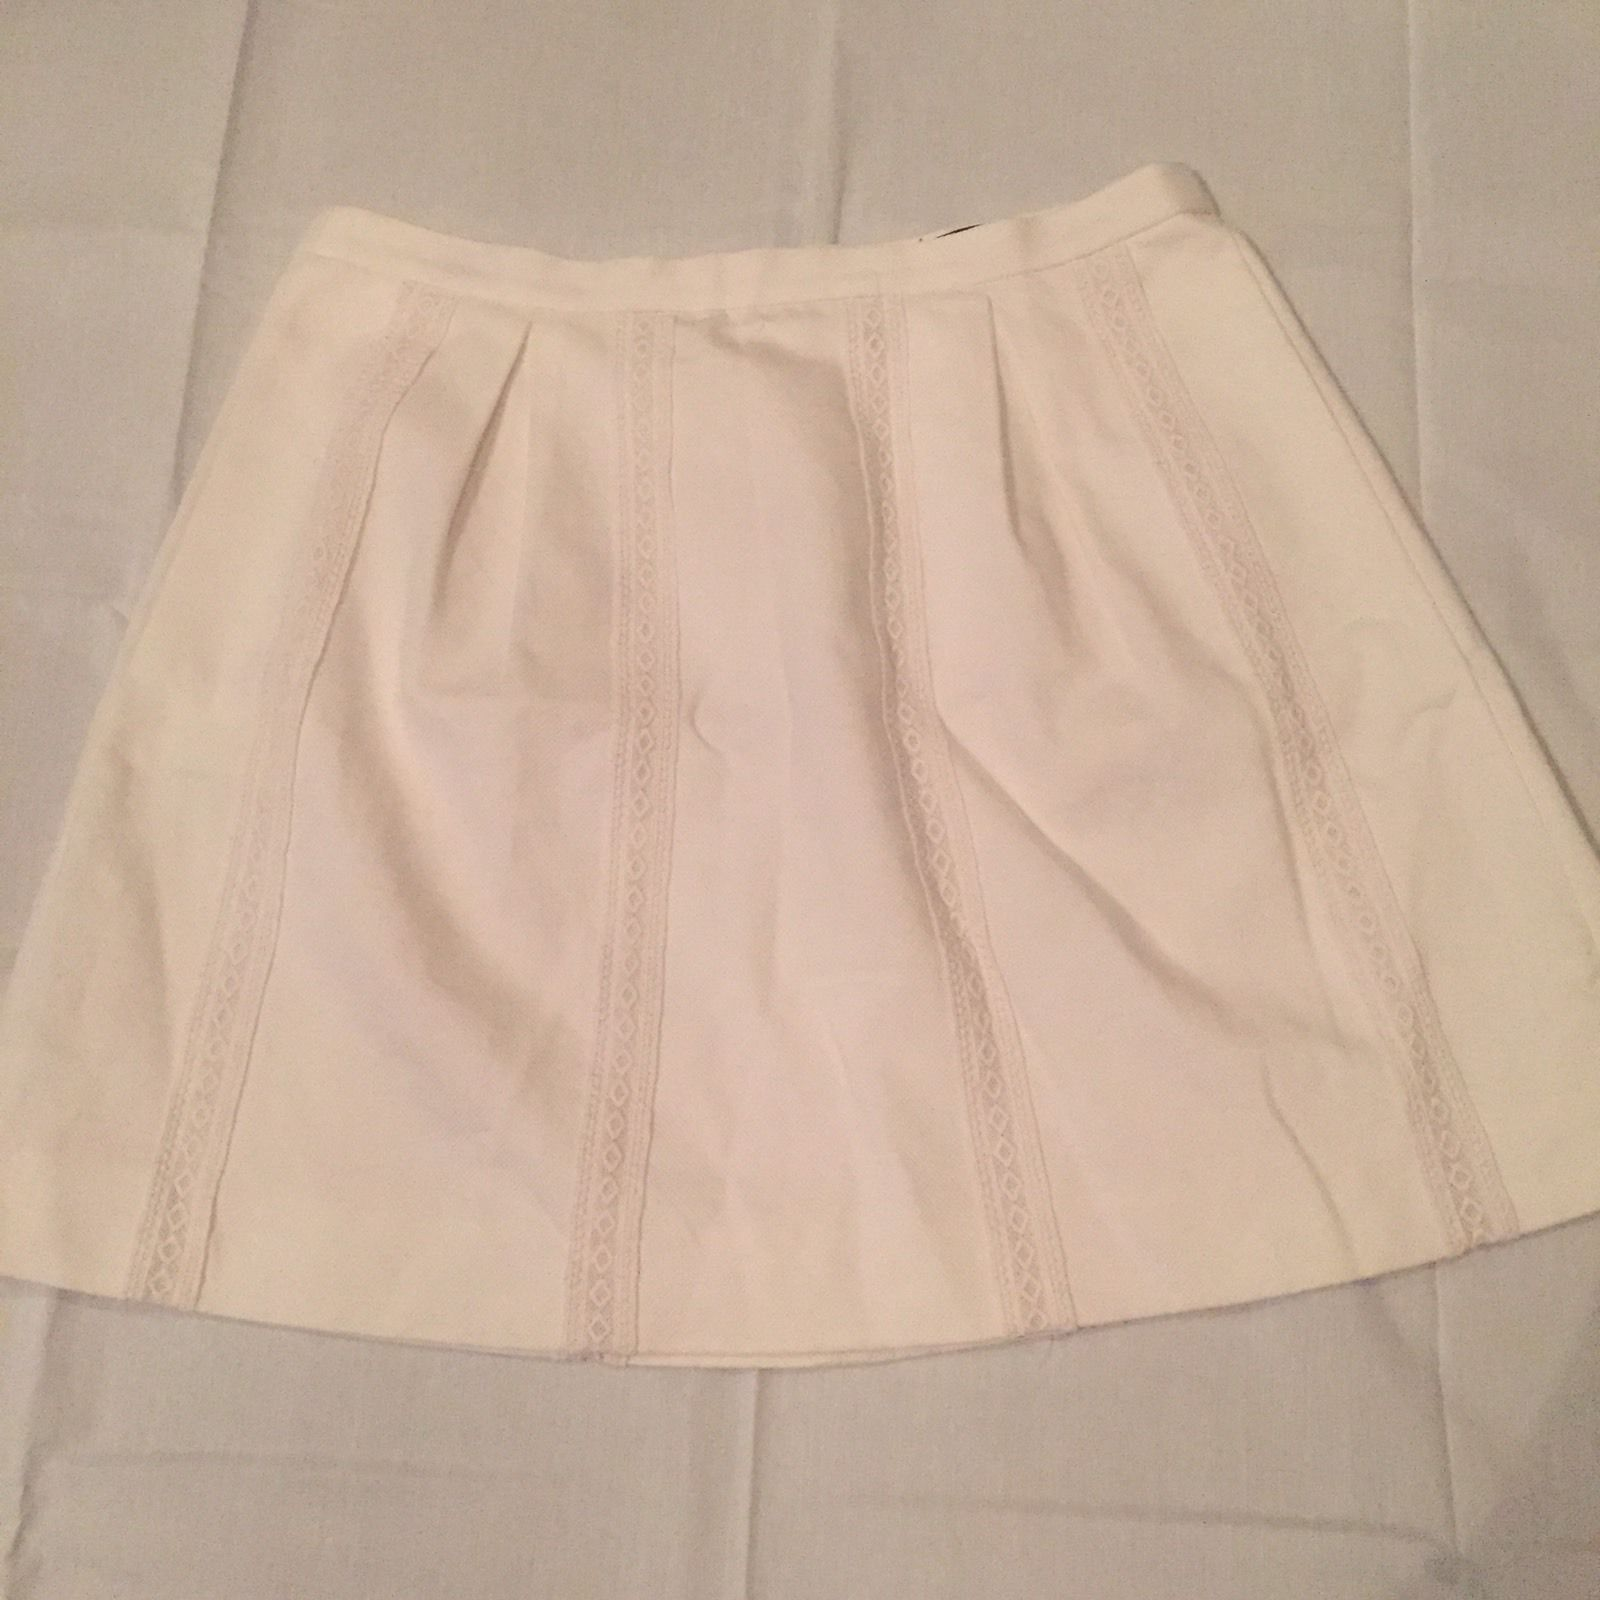 J. Crew White Lace Stripe Mini Skirt Size 10 Lined